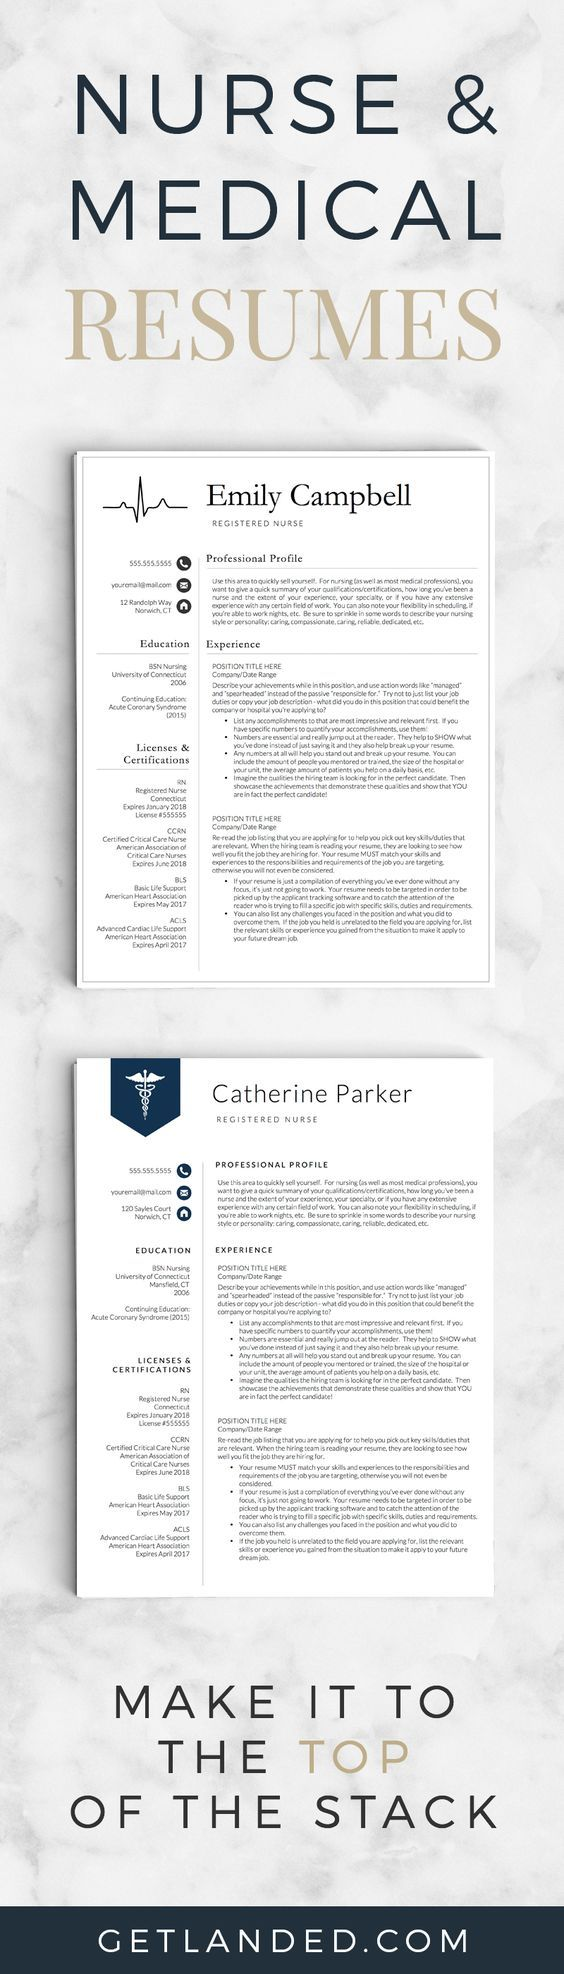 Nurse resume templates | Medical resumes | Resume templates specifically designed for the nursing profession!: